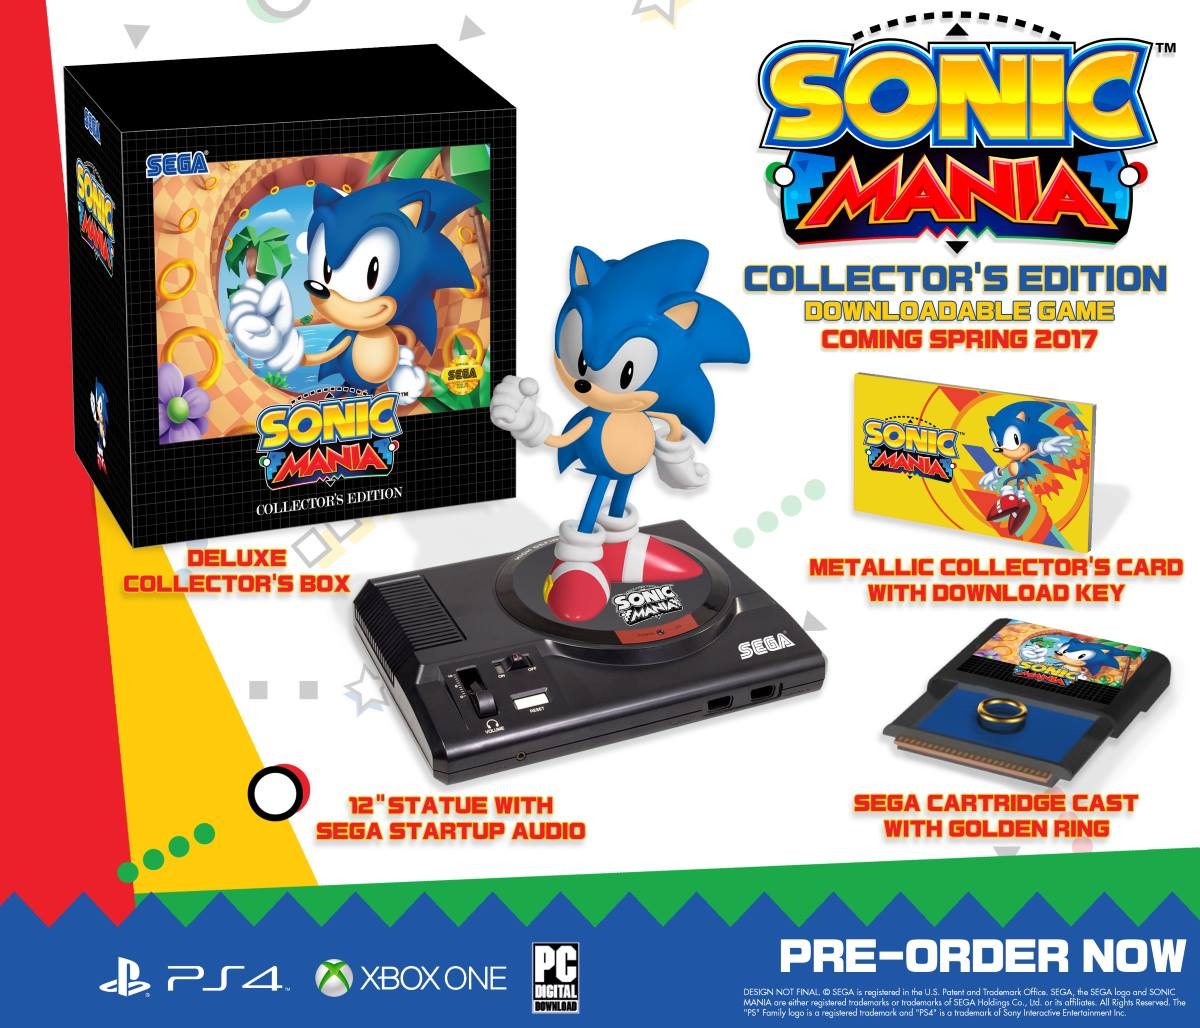 sonic-mania-collectors-edition